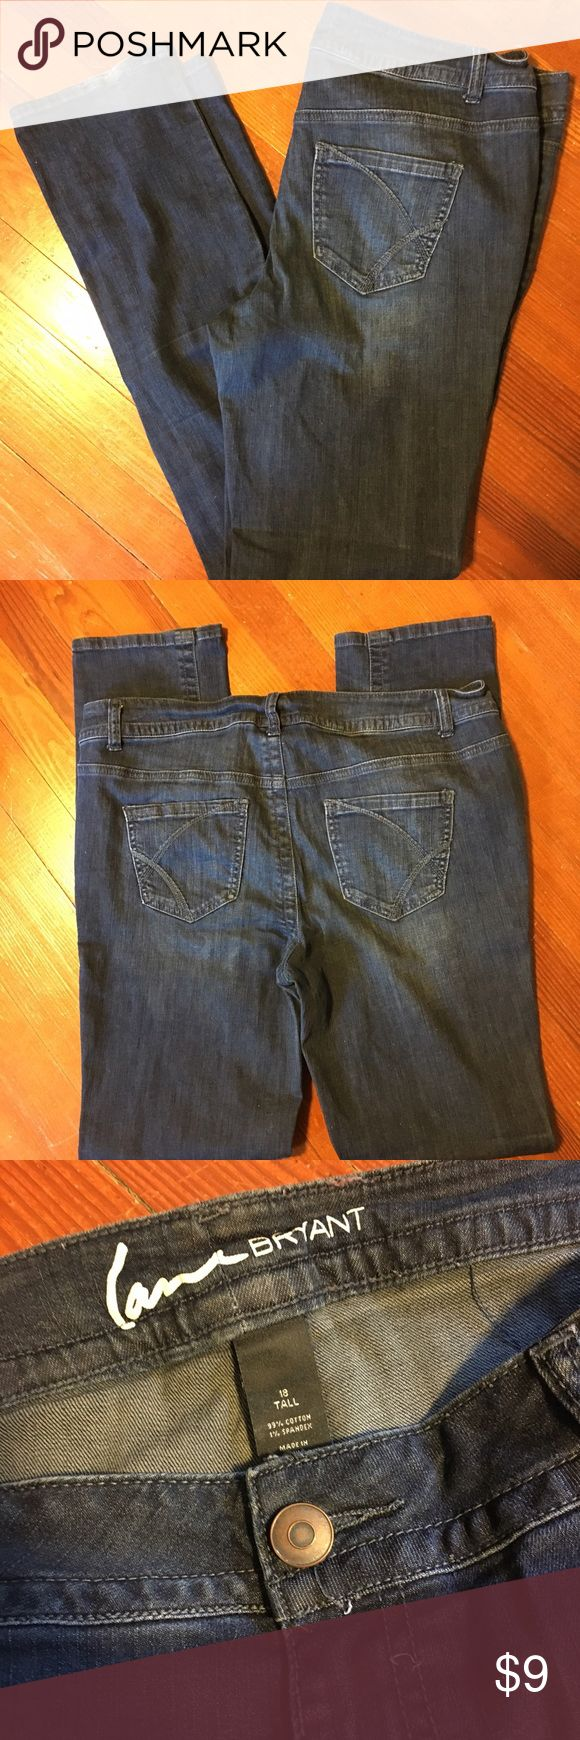 Lane Bryant 18 Tall women's Jeans In used condition. Some wear on the bottom. Great jeans! I offer discounts on bundles so be sure to check out my closet! Lane Bryant Jeans Straight Leg